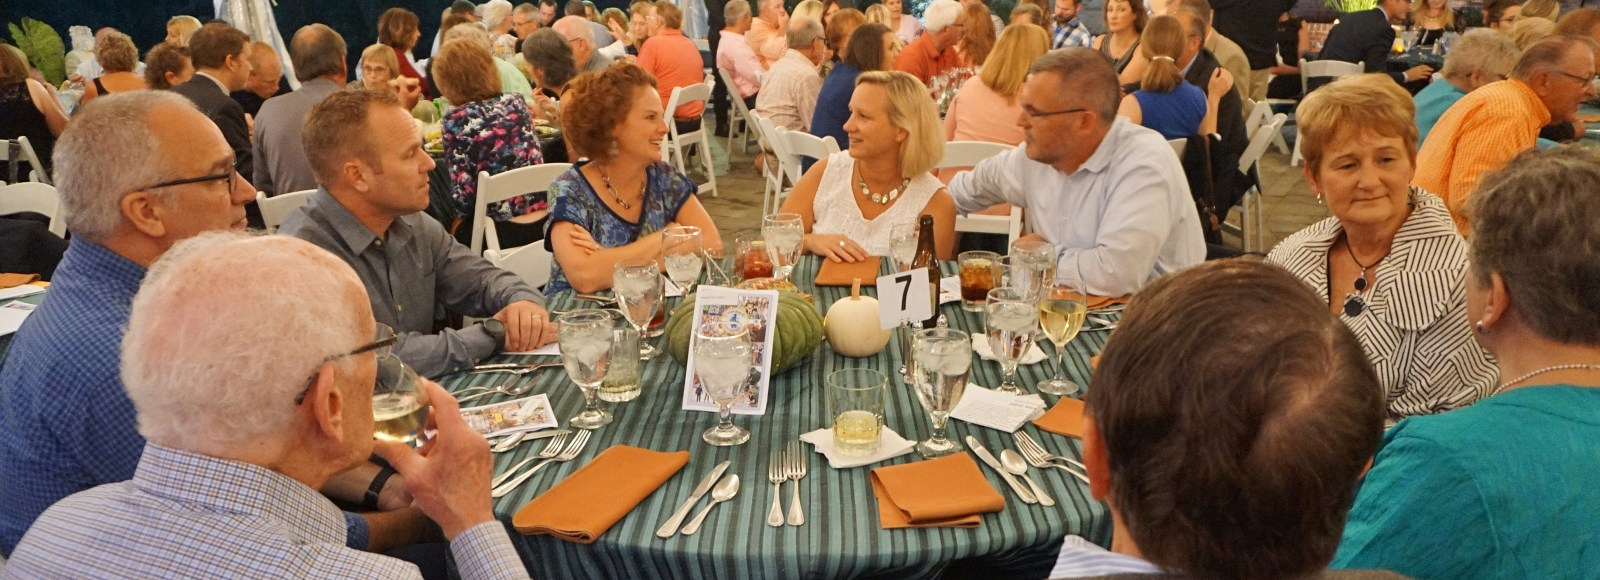 Annual dinner at Drumore Estate attracts 200 guests